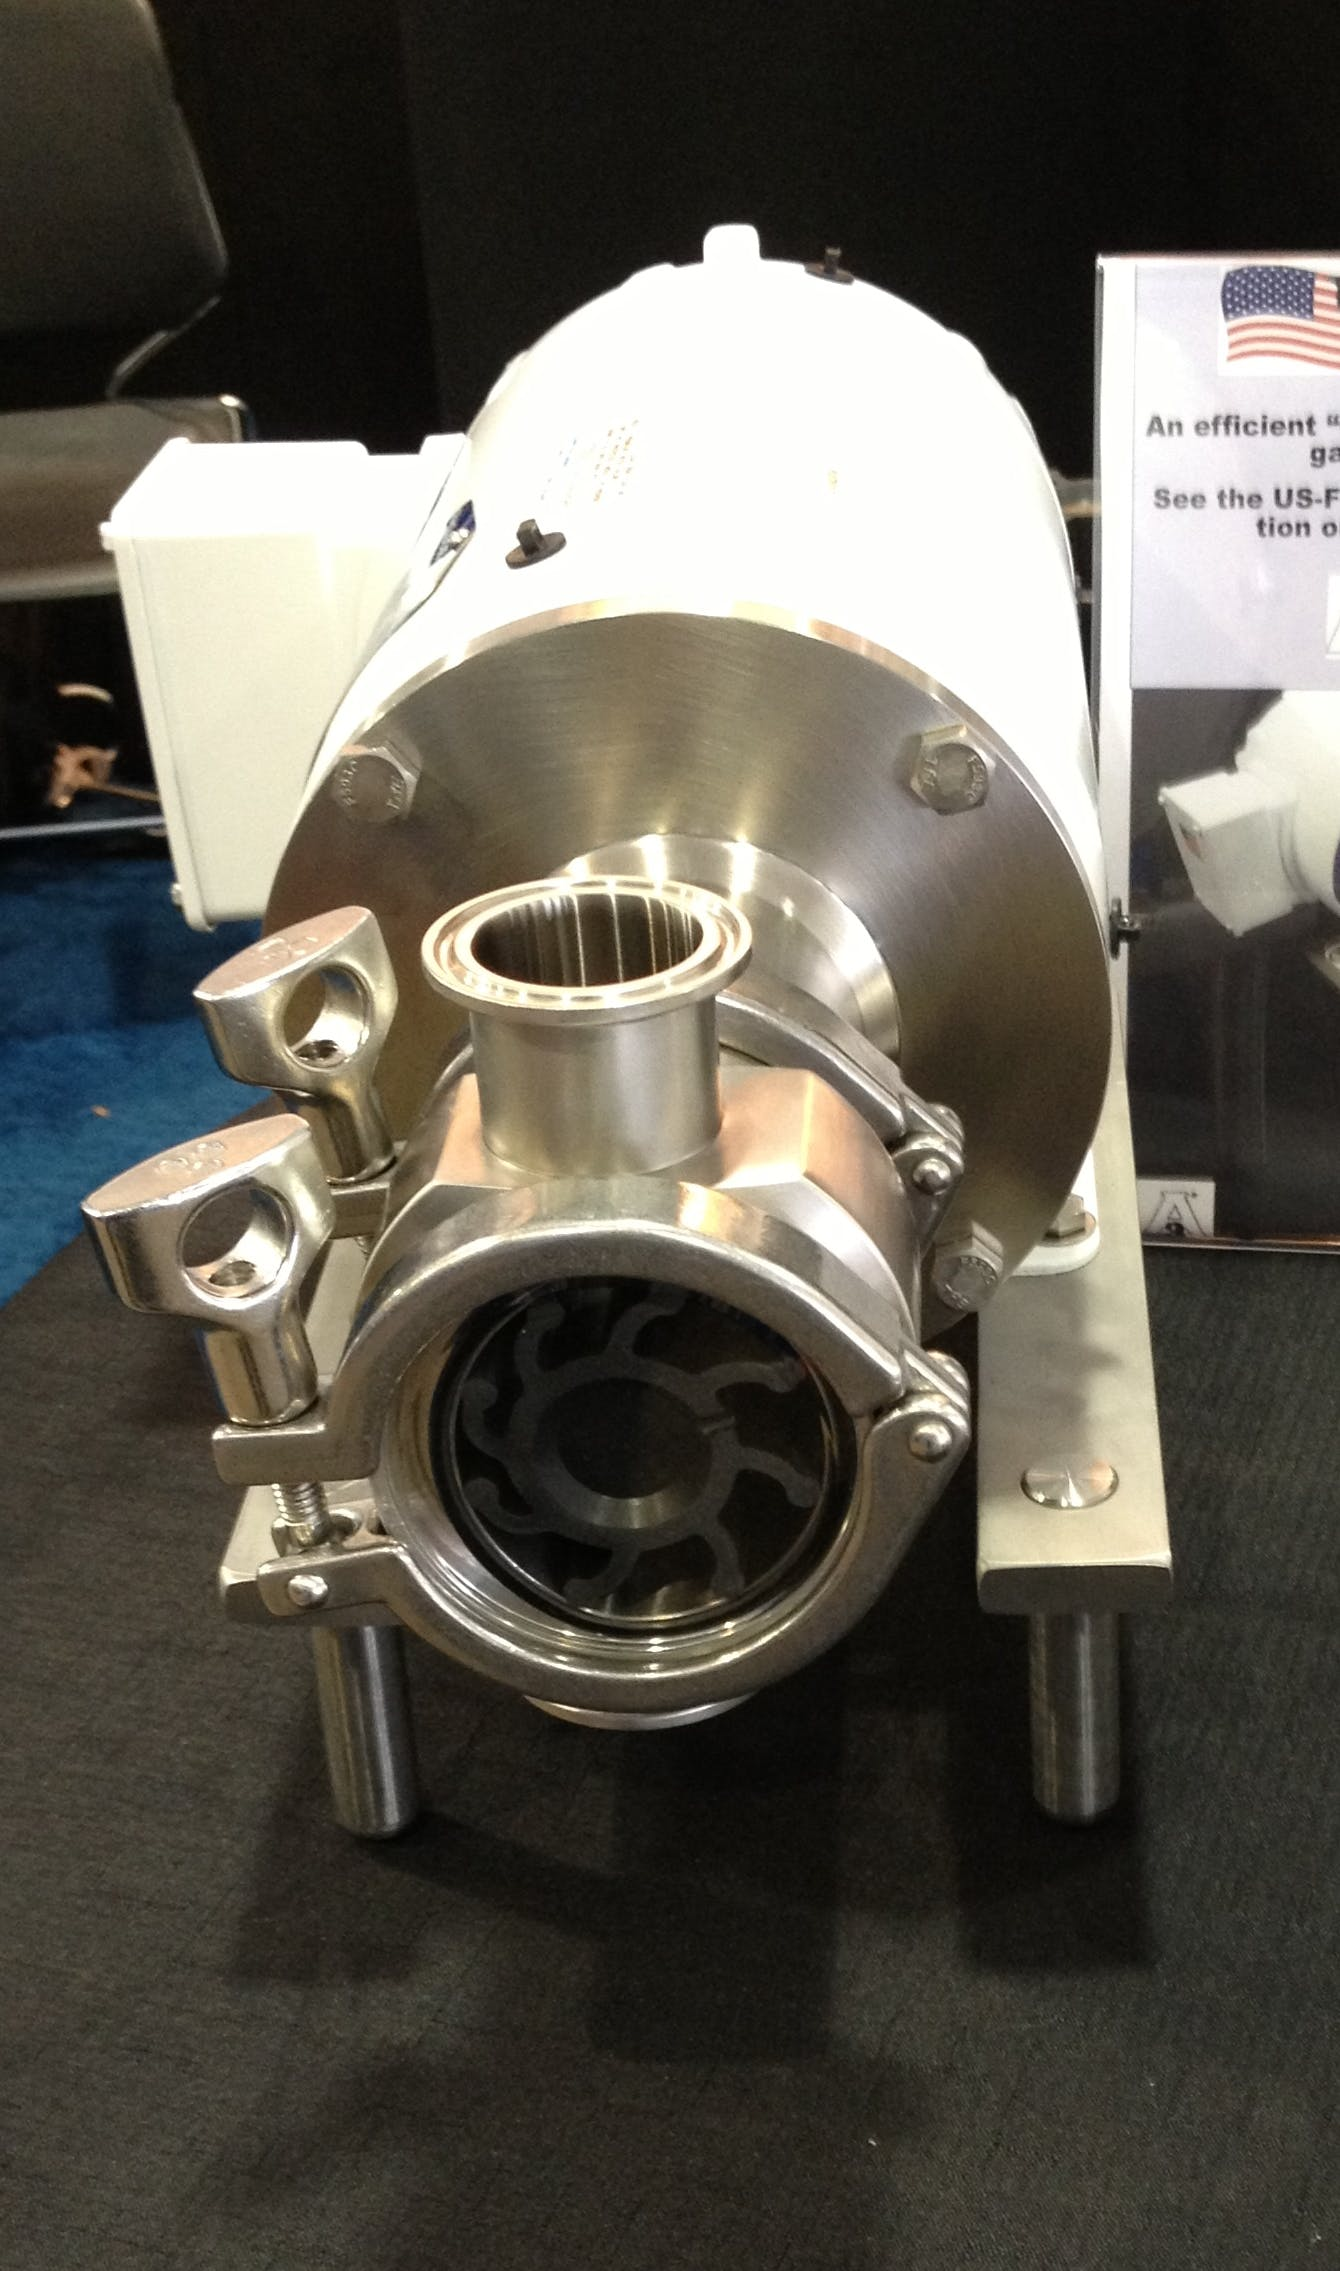 US-FIP Flexible Impeller Pump Sanitary pump sold by McFinn Technologies-US-FIP